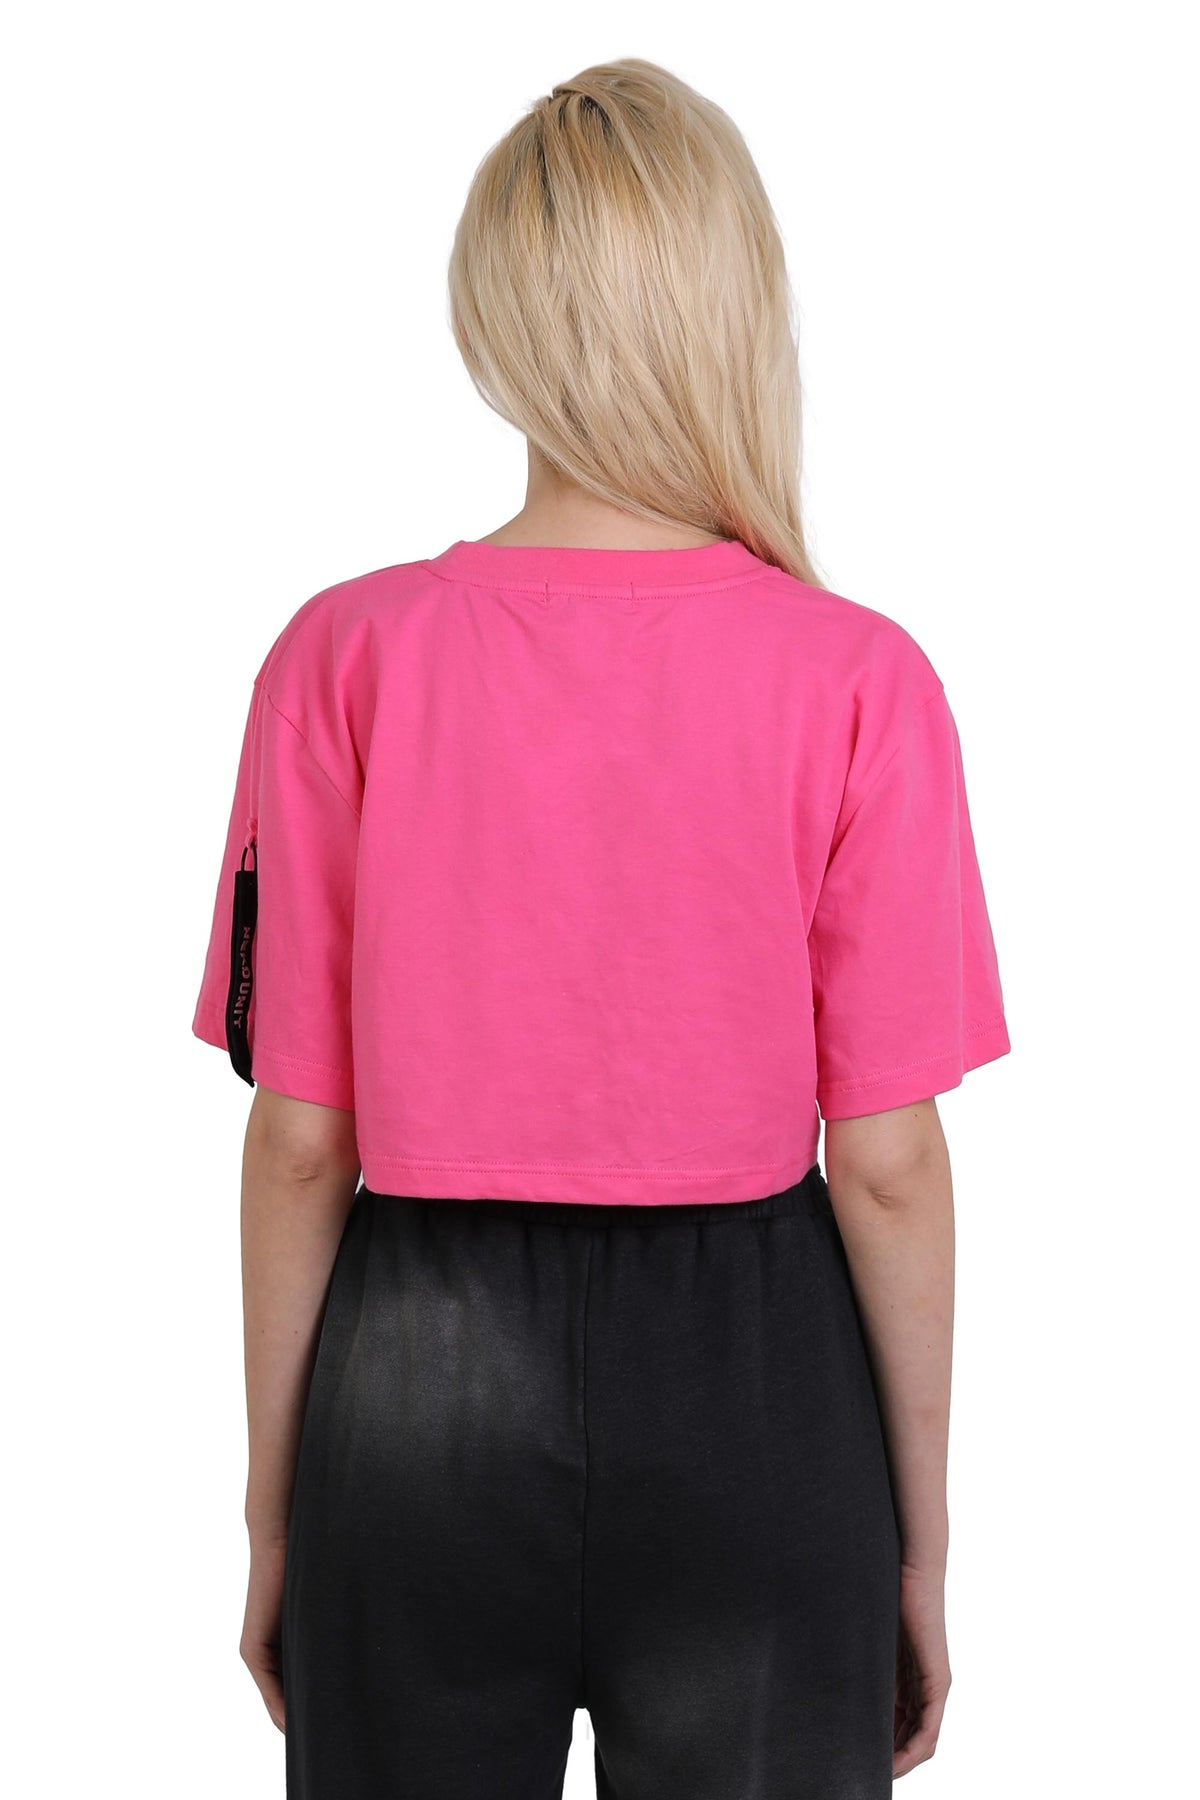 """GUARD DOG"" CROPPED TOP 